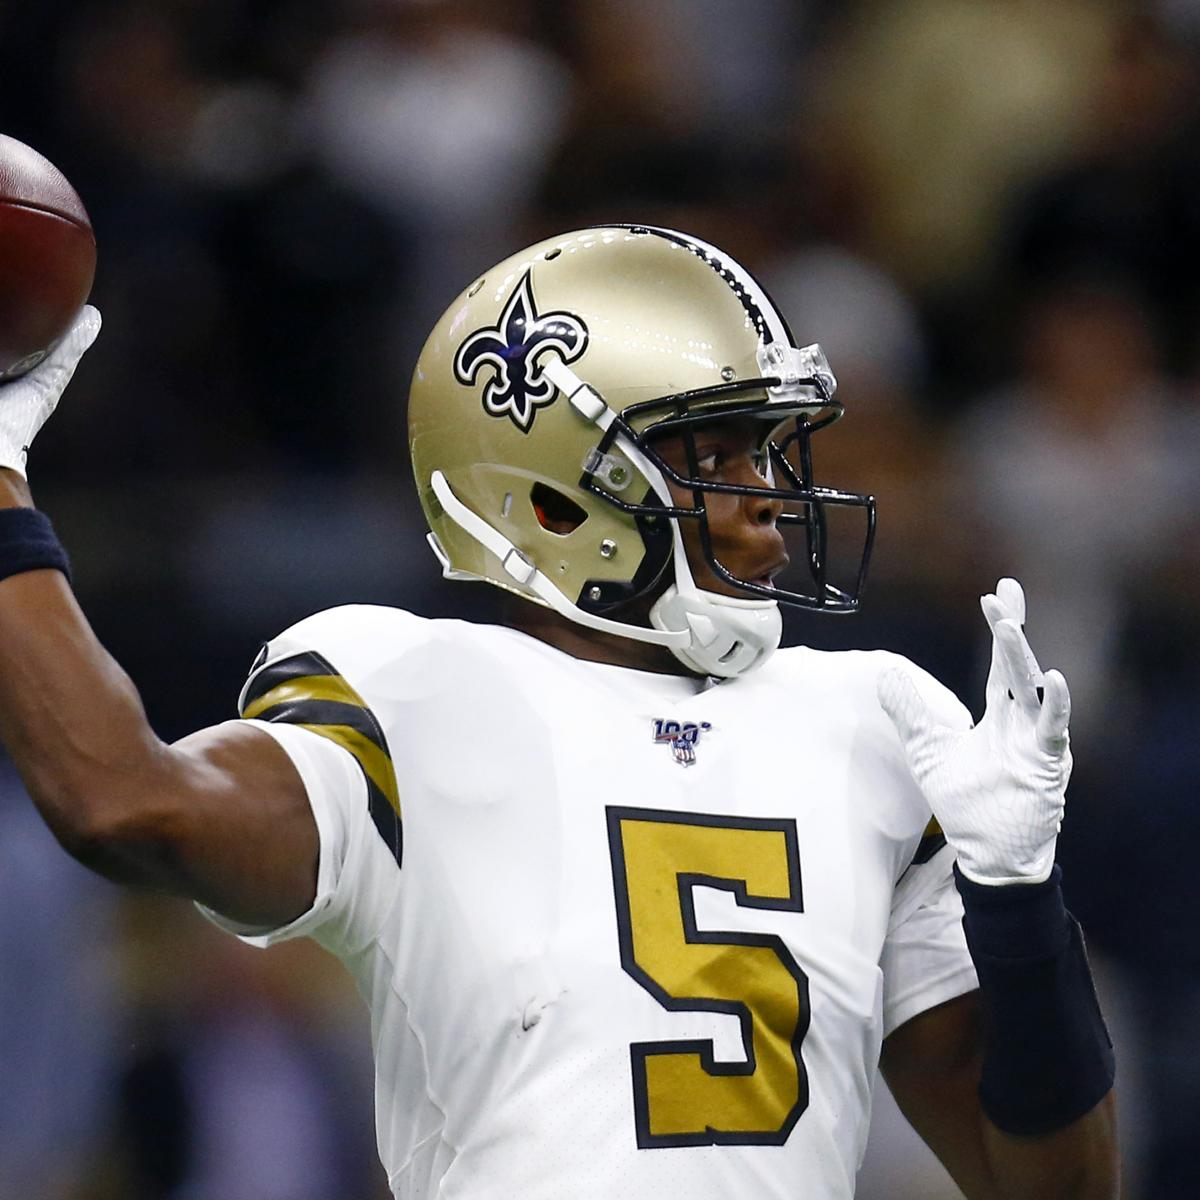 Report: Teddy Bridgewater, Panthers Finalizing 3-Year, $63M Contract in FA